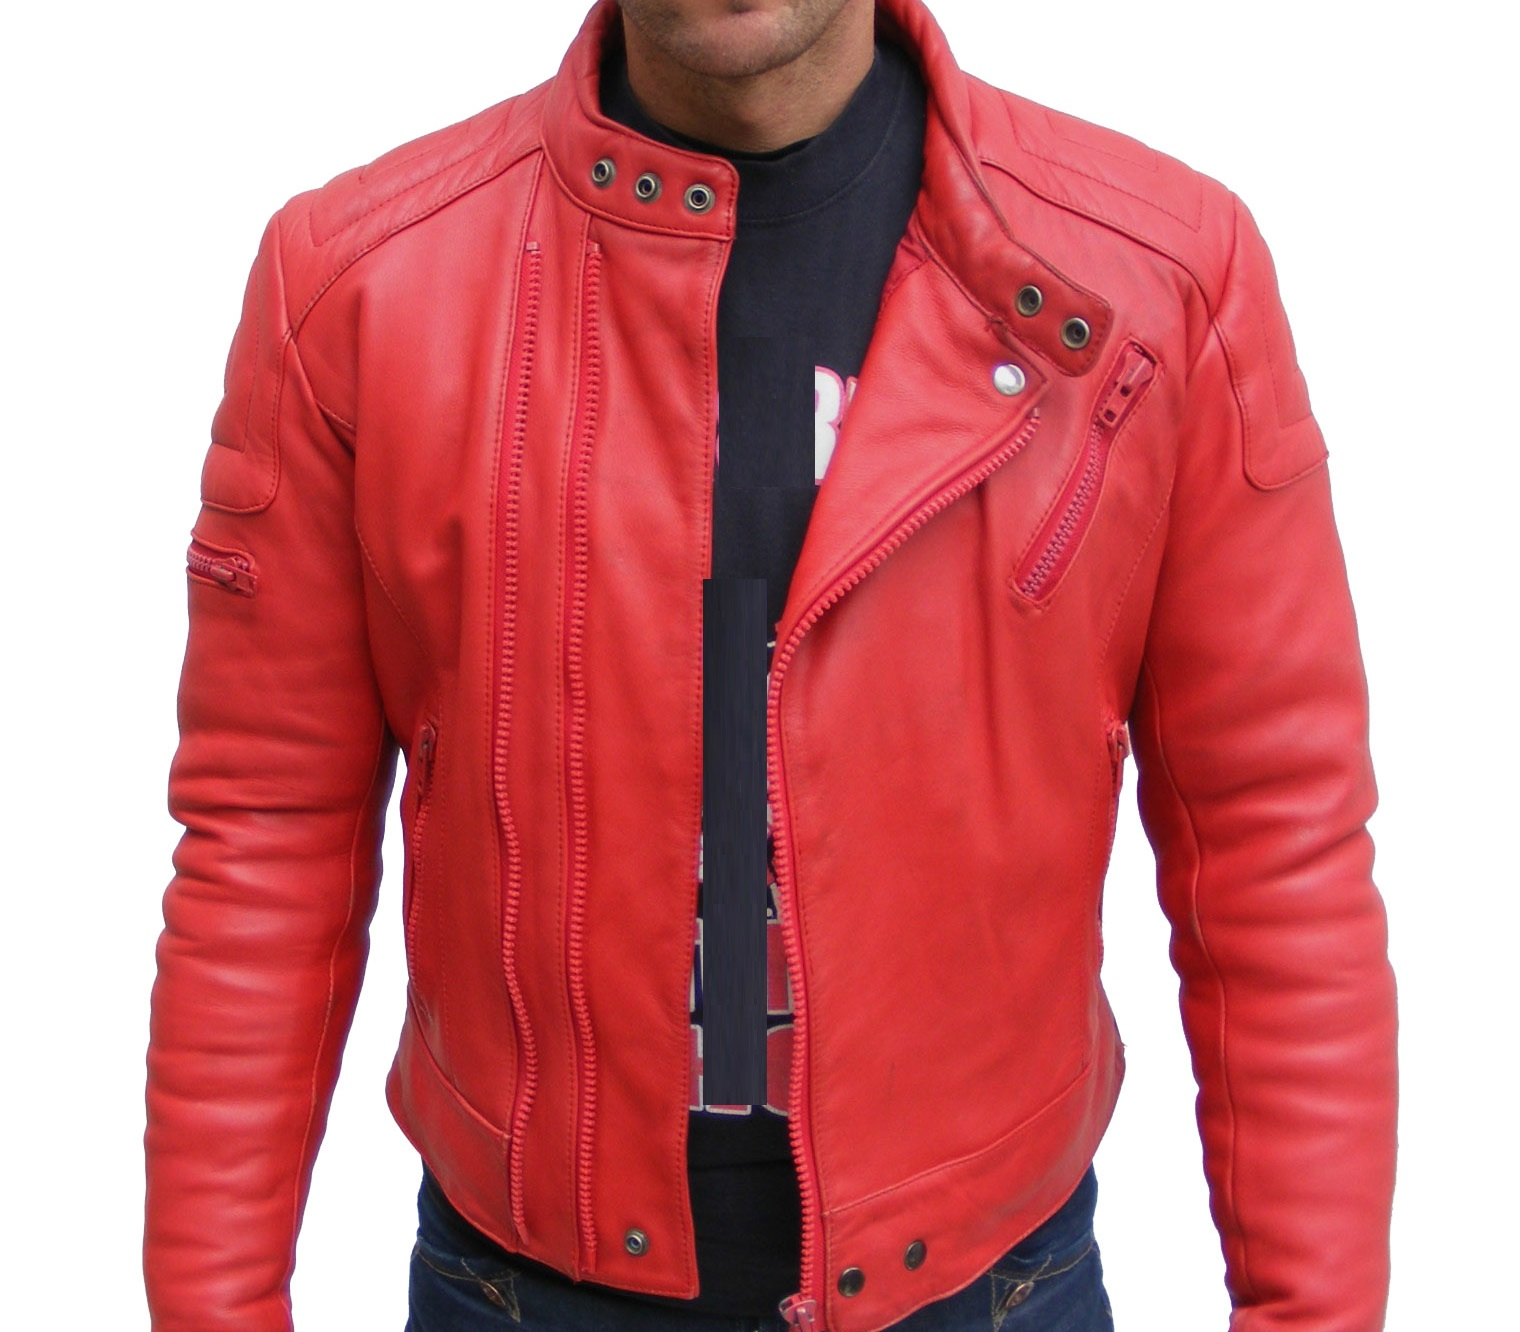 Mens red leather jackets